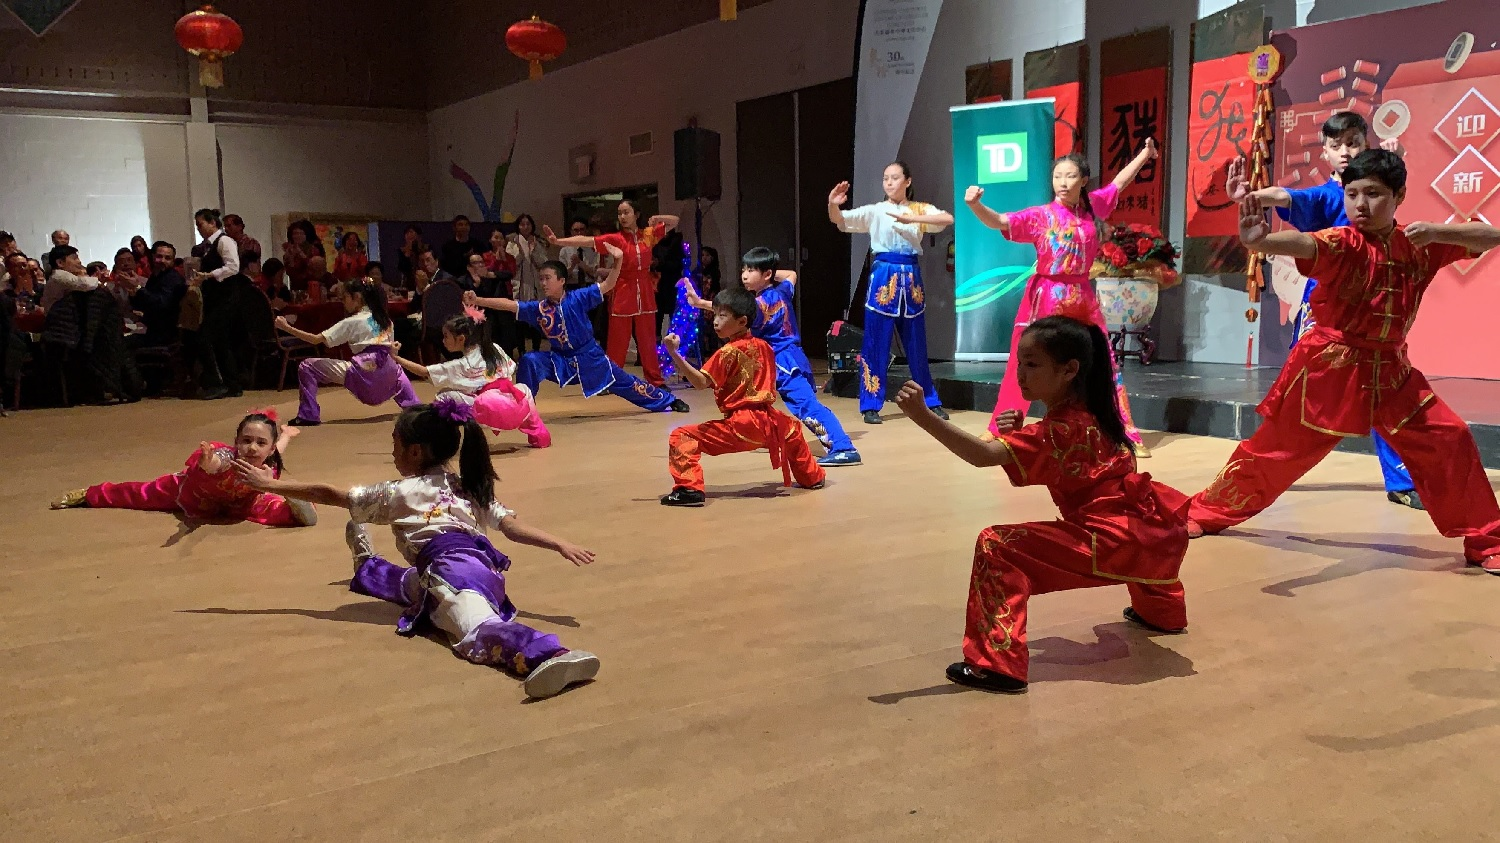 wayland-li-wushu-year-of-the-pig-dinner-chinese-cultural-centre-2019-03.jpg